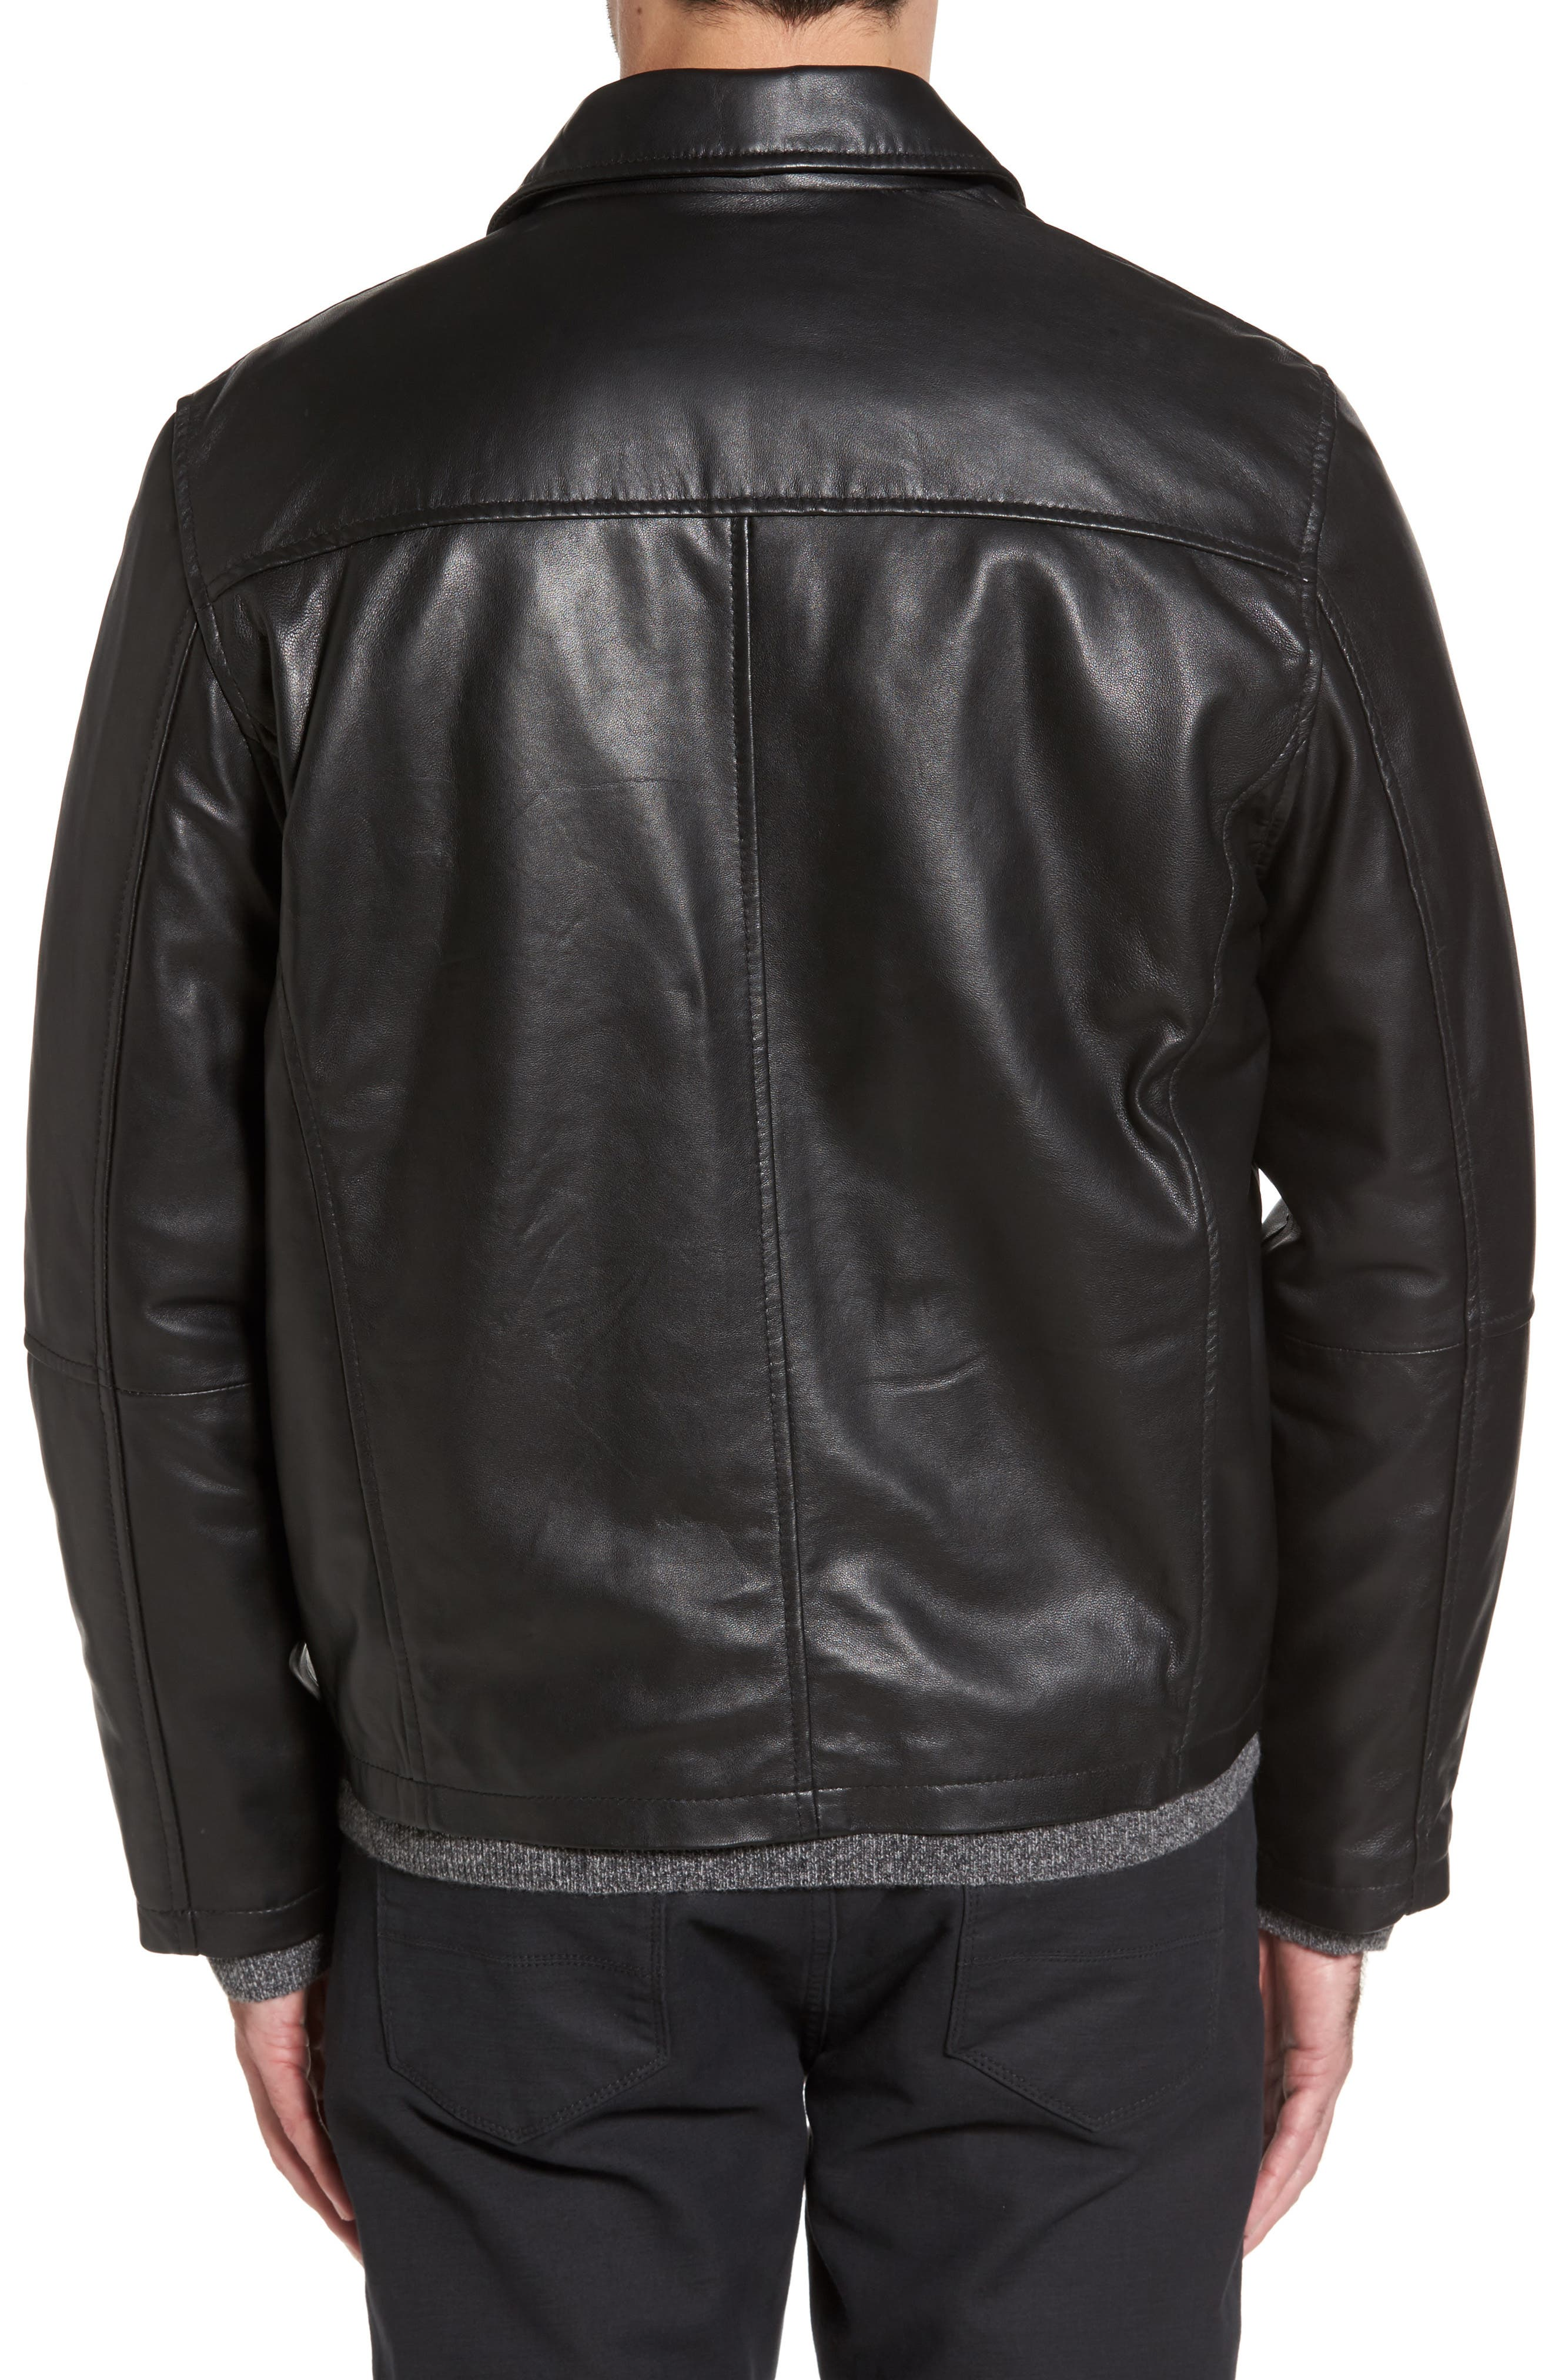 Collared Leather Jacket,                             Alternate thumbnail 2, color,                             Black